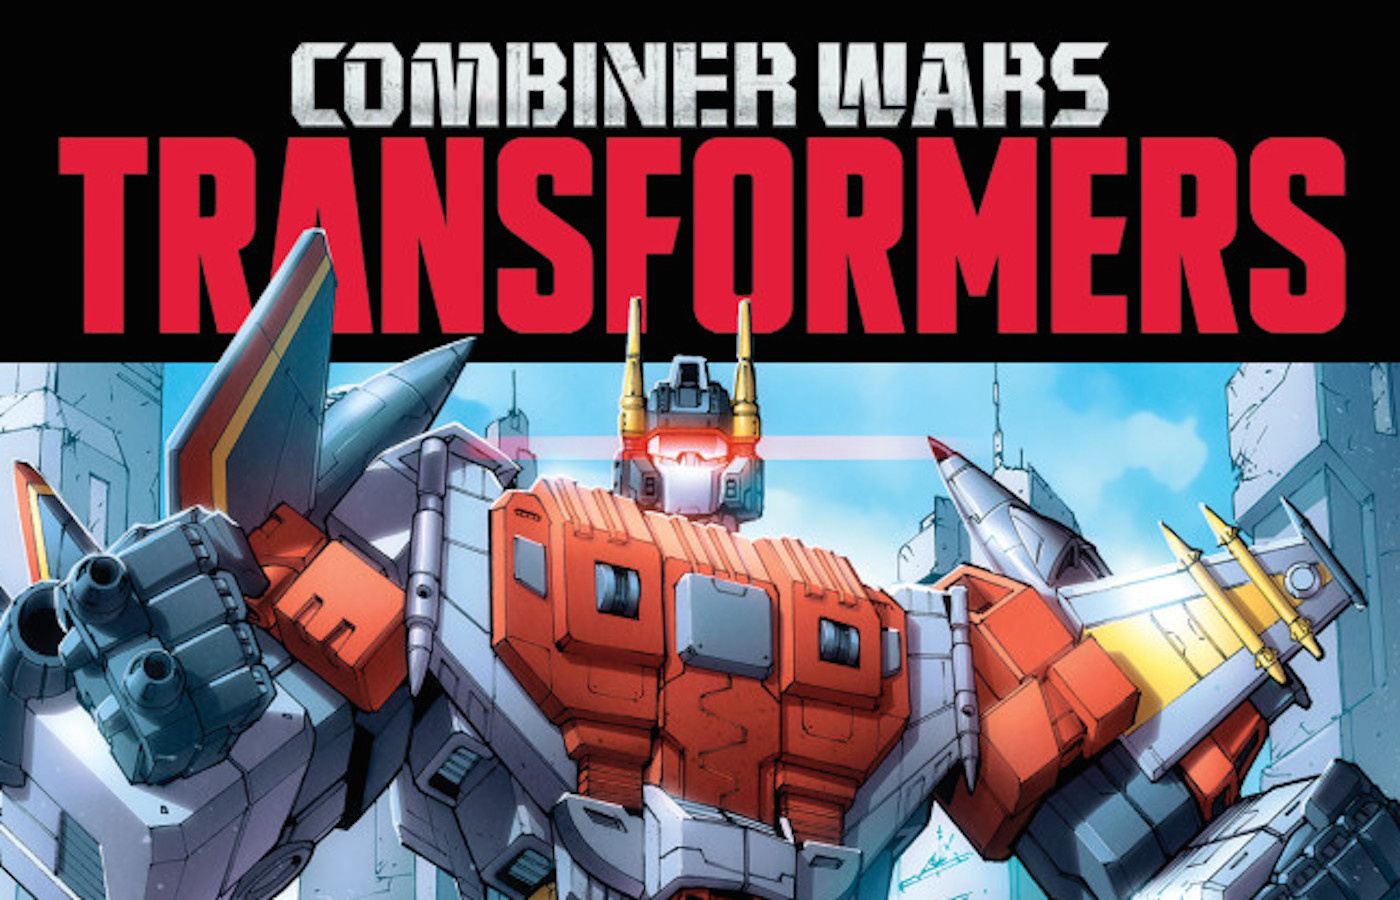 Transformers combiner wars idw publishing